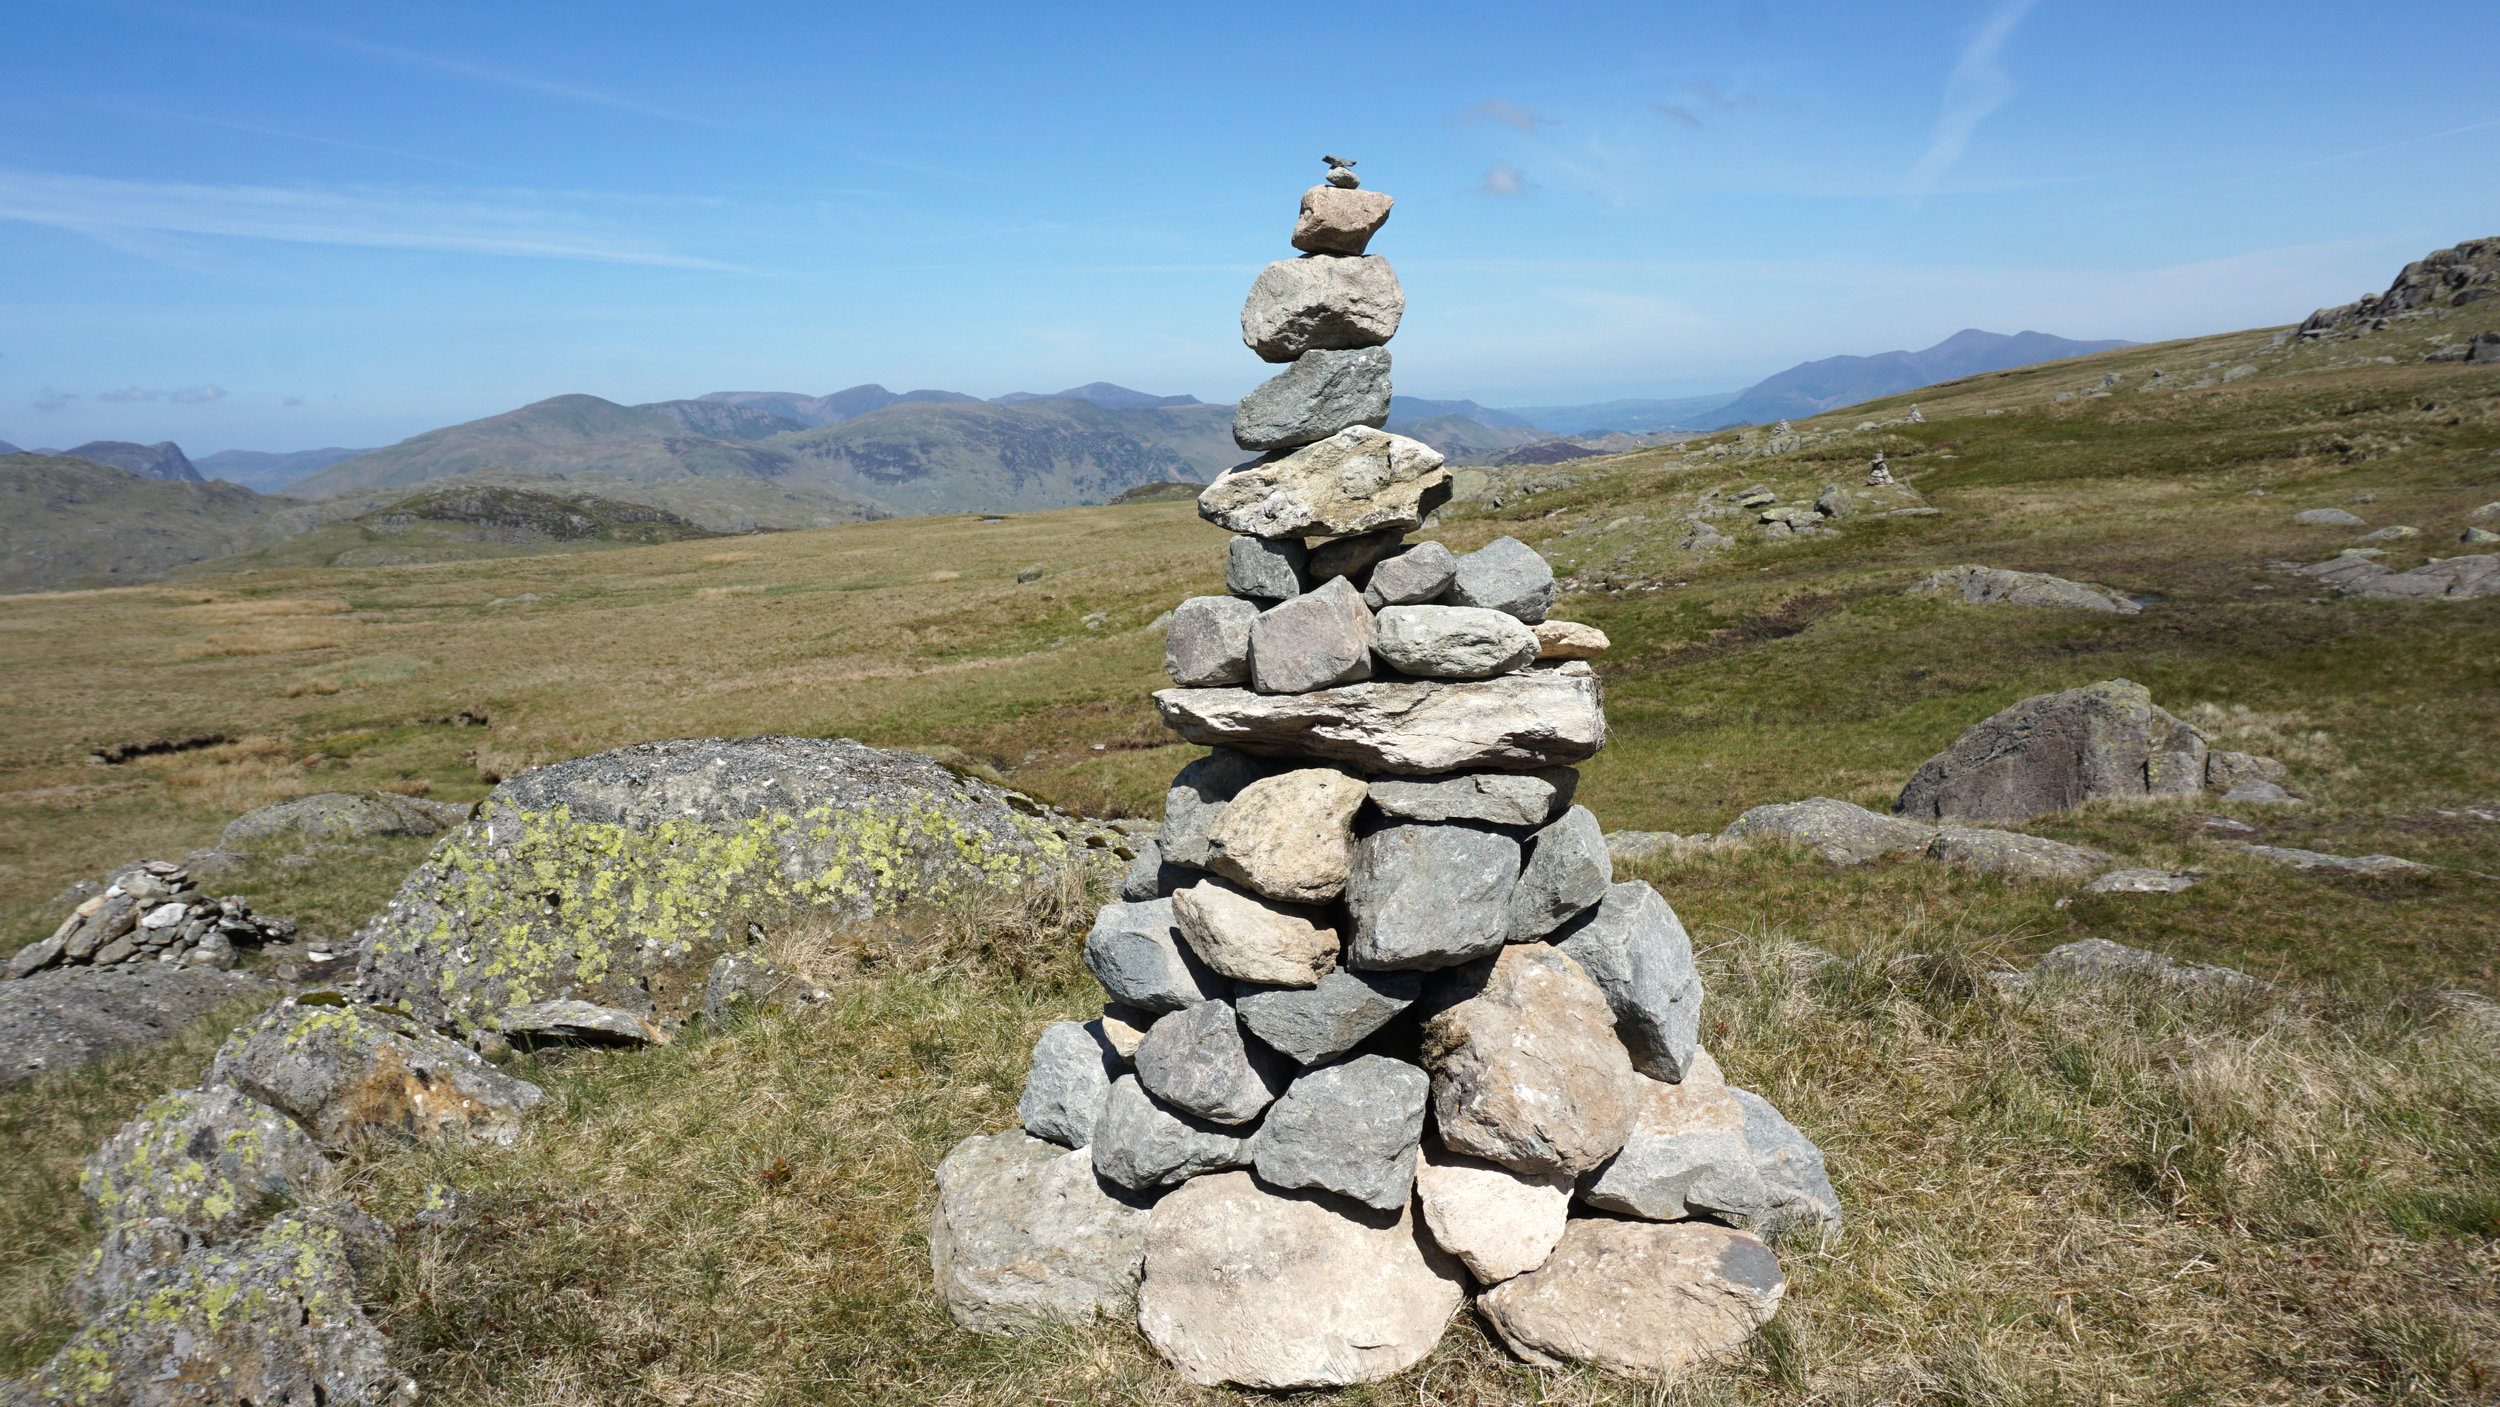 Cairns to mark the way